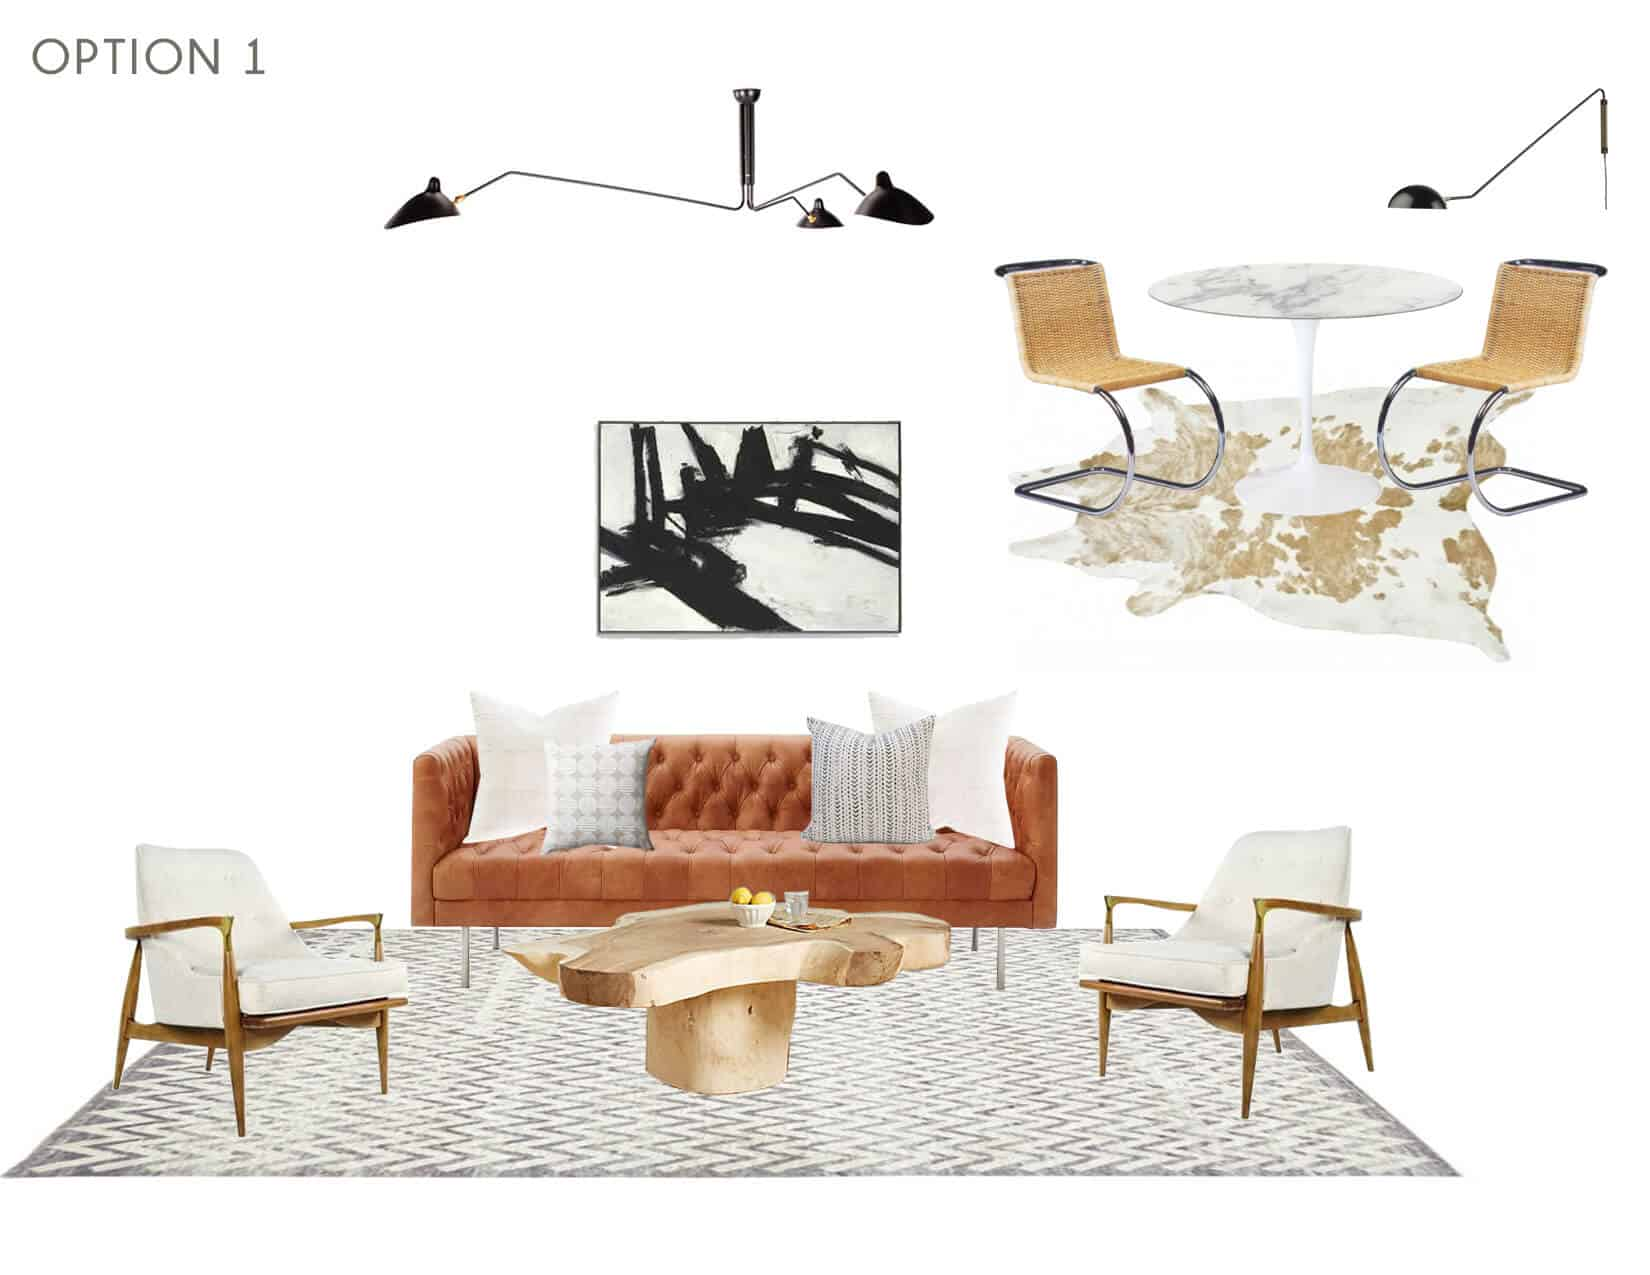 Emily Henderson_Full Design_Sunroom_Introduction_Moodboard_Option 1